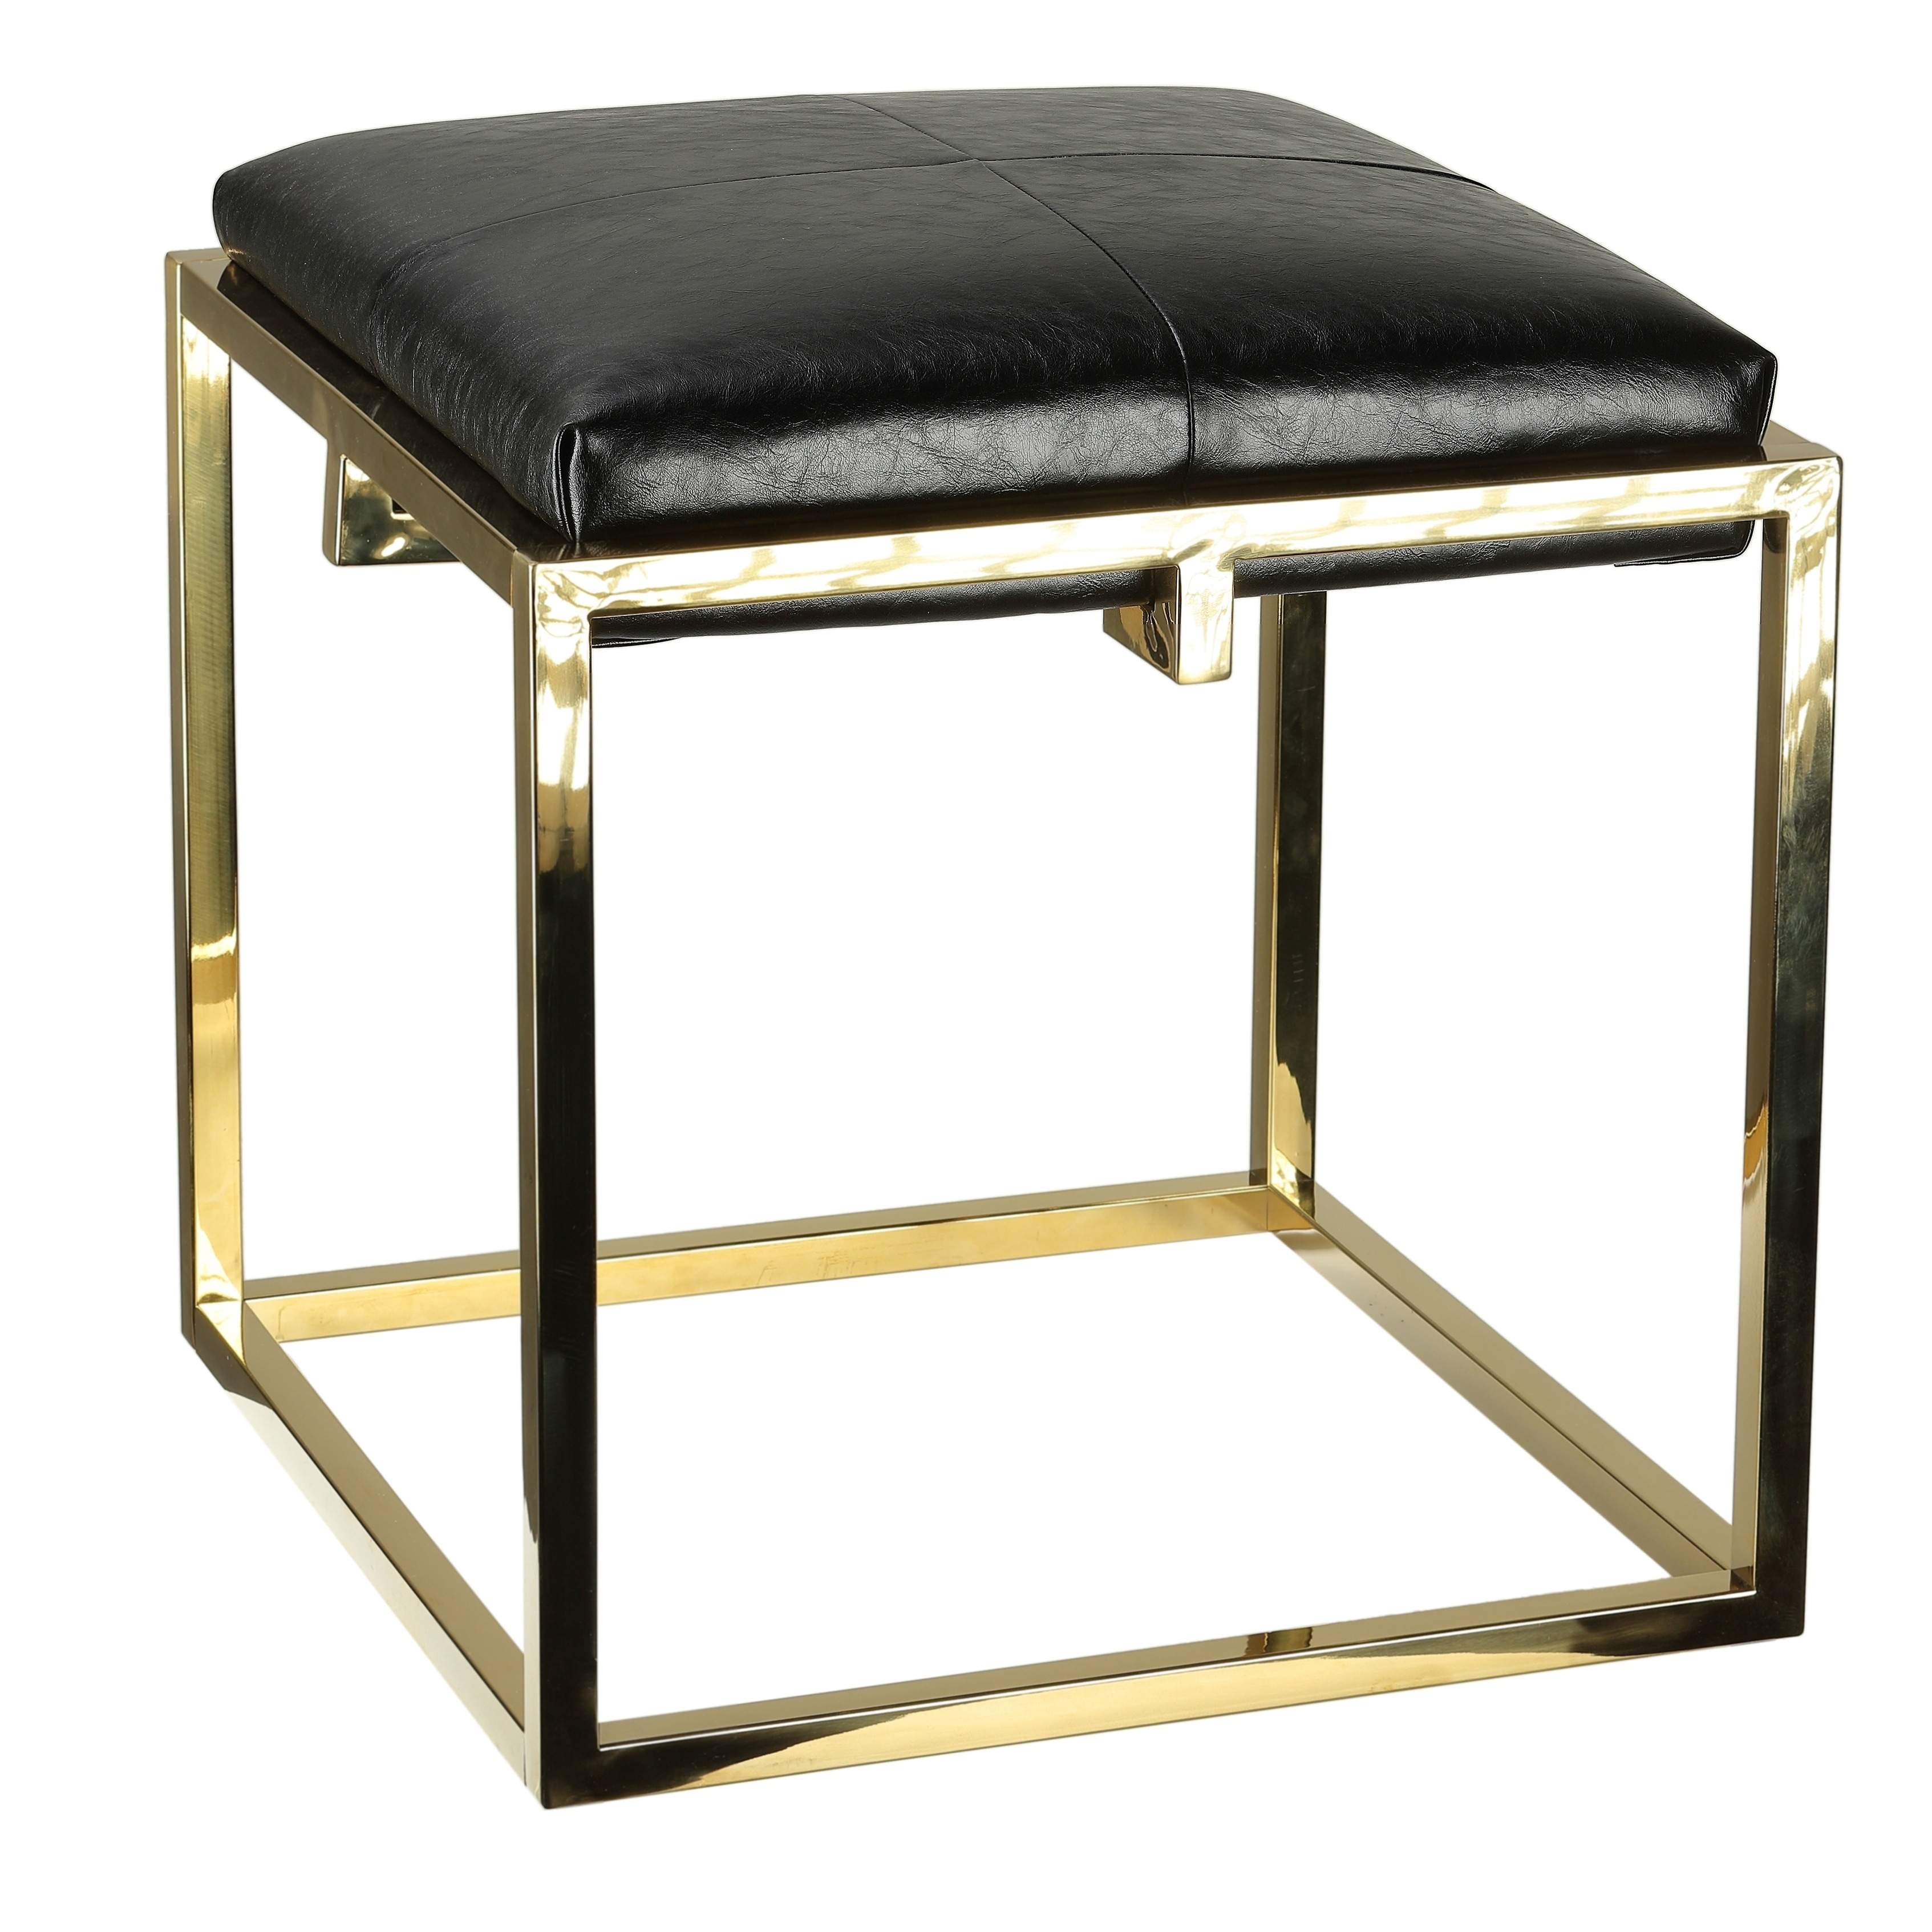 Cortesi Home  Hygge Gold Contemporary Metal Ottoman with a Black Cushion 18x18x18